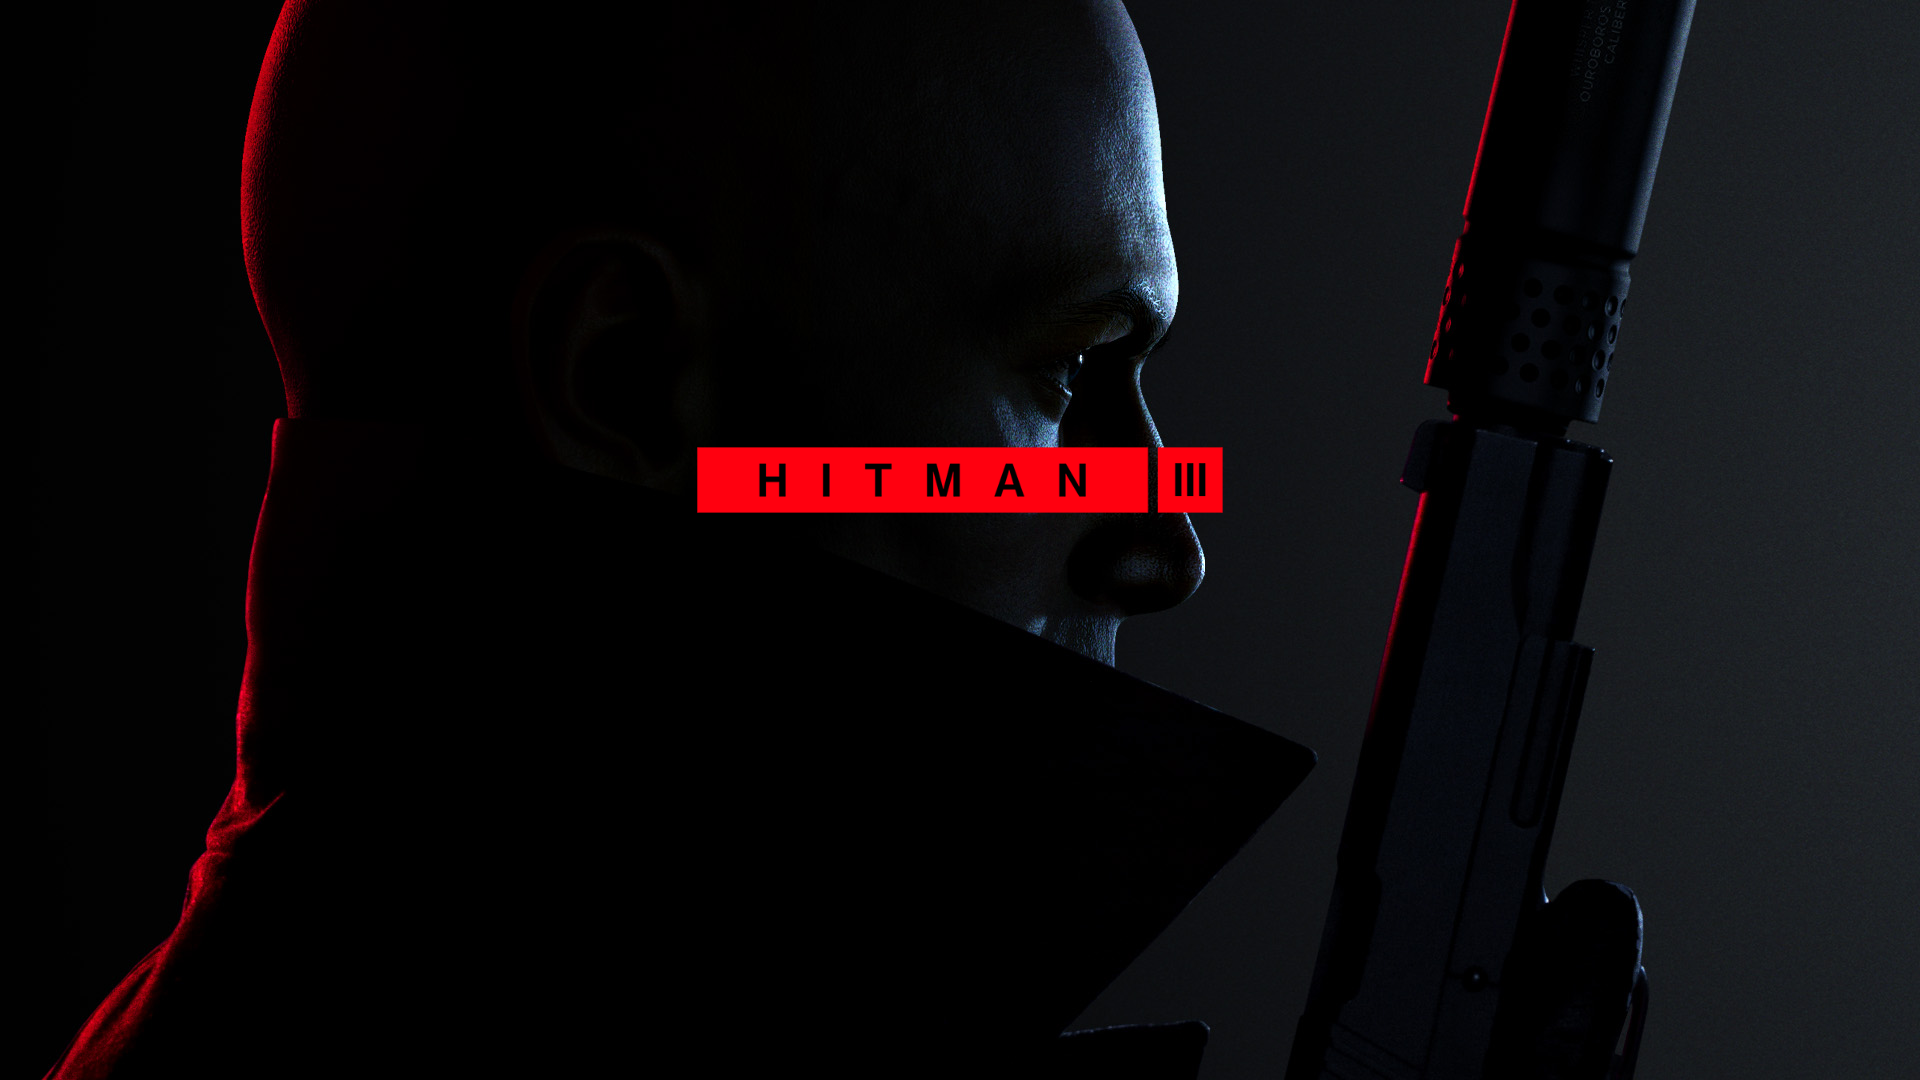 hitman_3_splash Hitman 3 - PC (Epic) Review